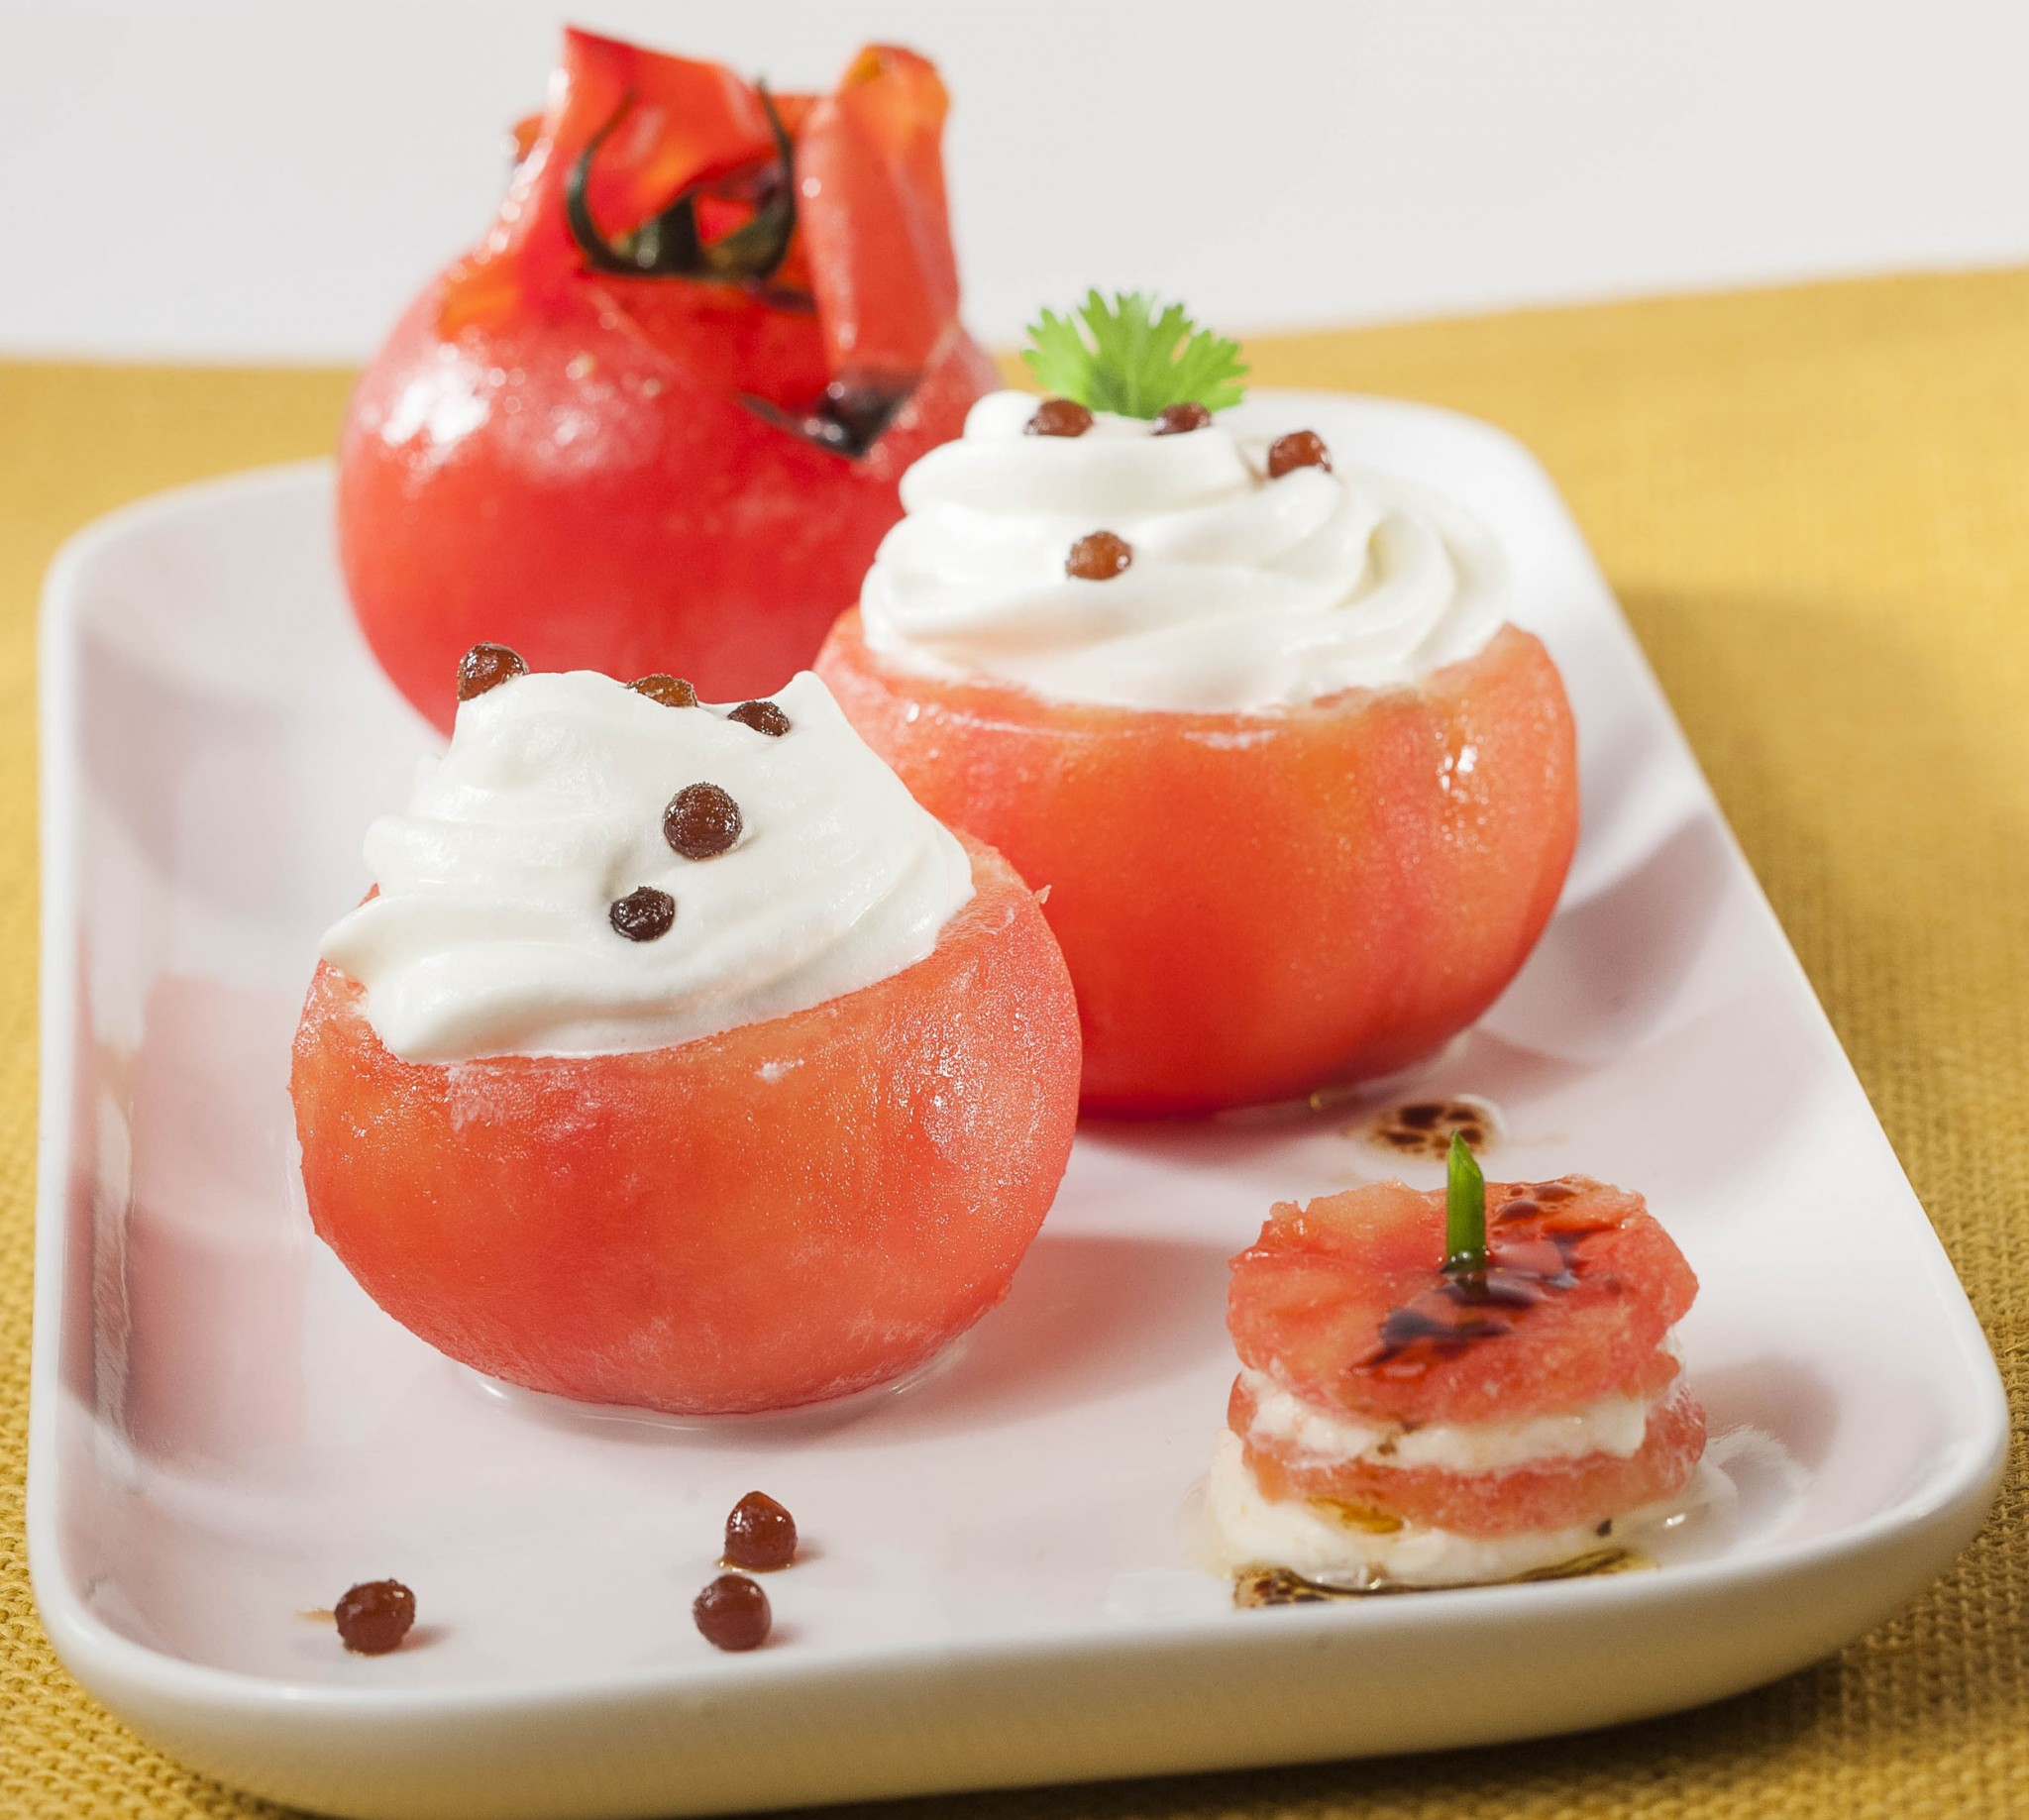 photographie culinaire, tomate farcie